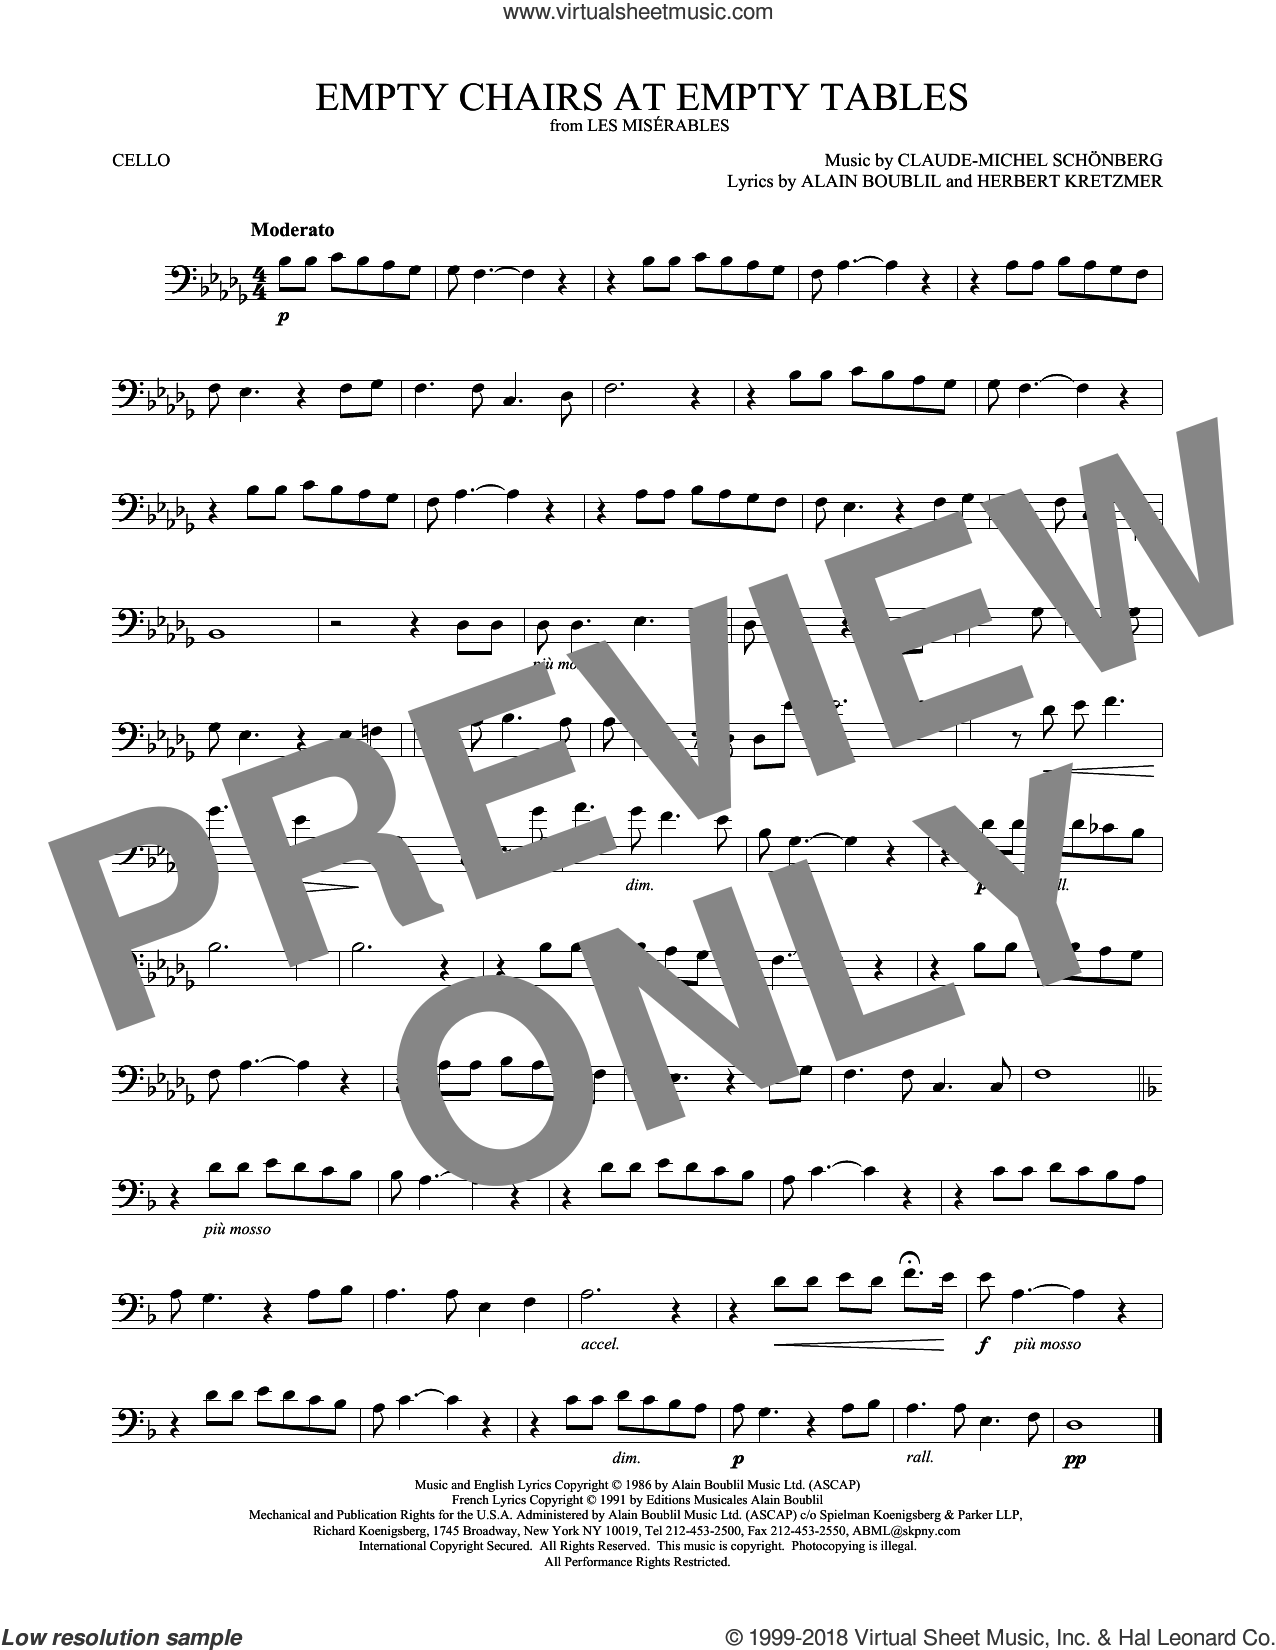 Empty Chairs At Empty Tables sheet music for cello solo by Alain Boublil, Claude-Michel Schonberg and Herbert Kretzmer, intermediate skill level